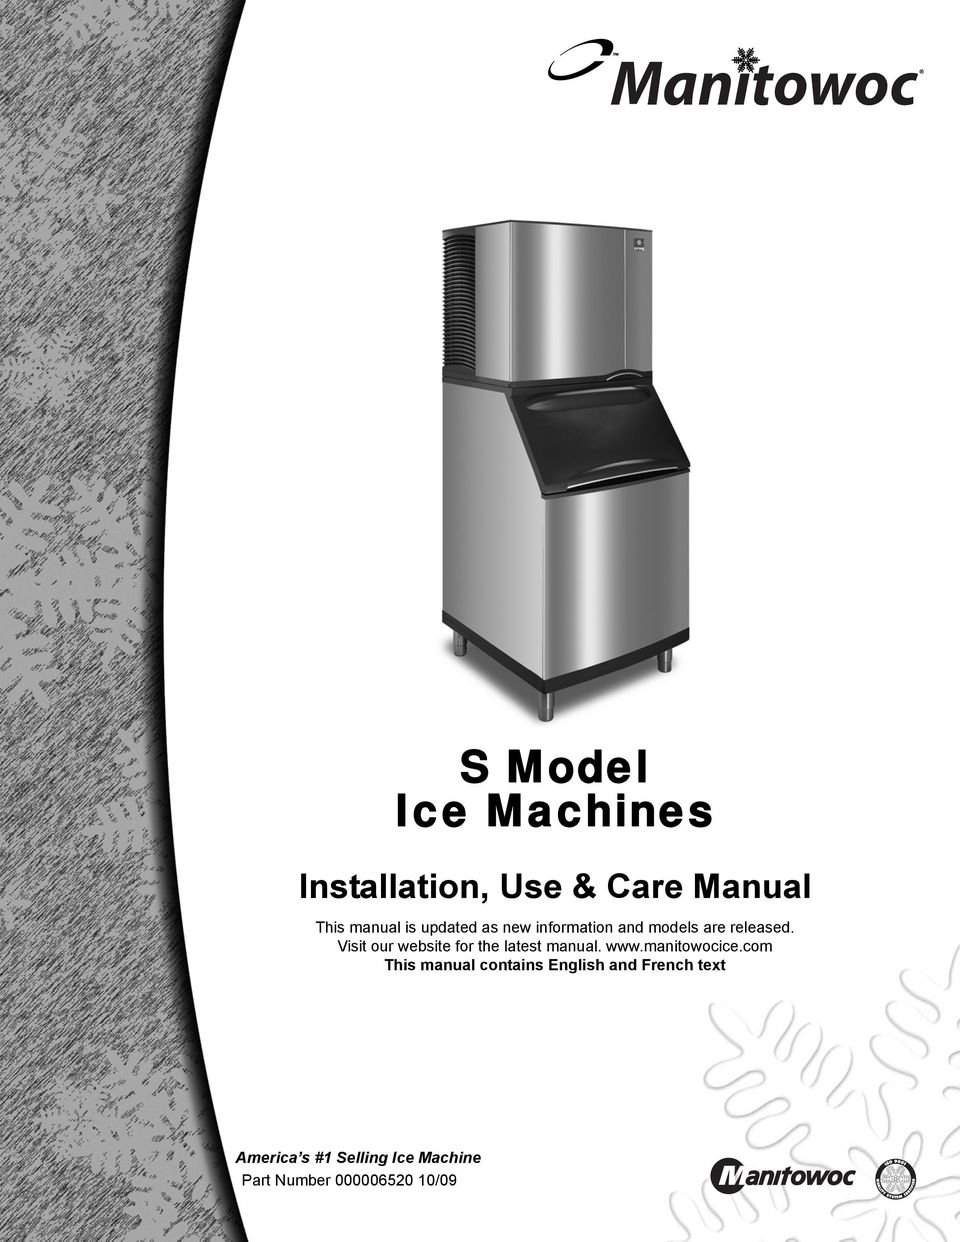 Manitowoc. S Model Ice Machines. Installation, Use & Care Manual - on